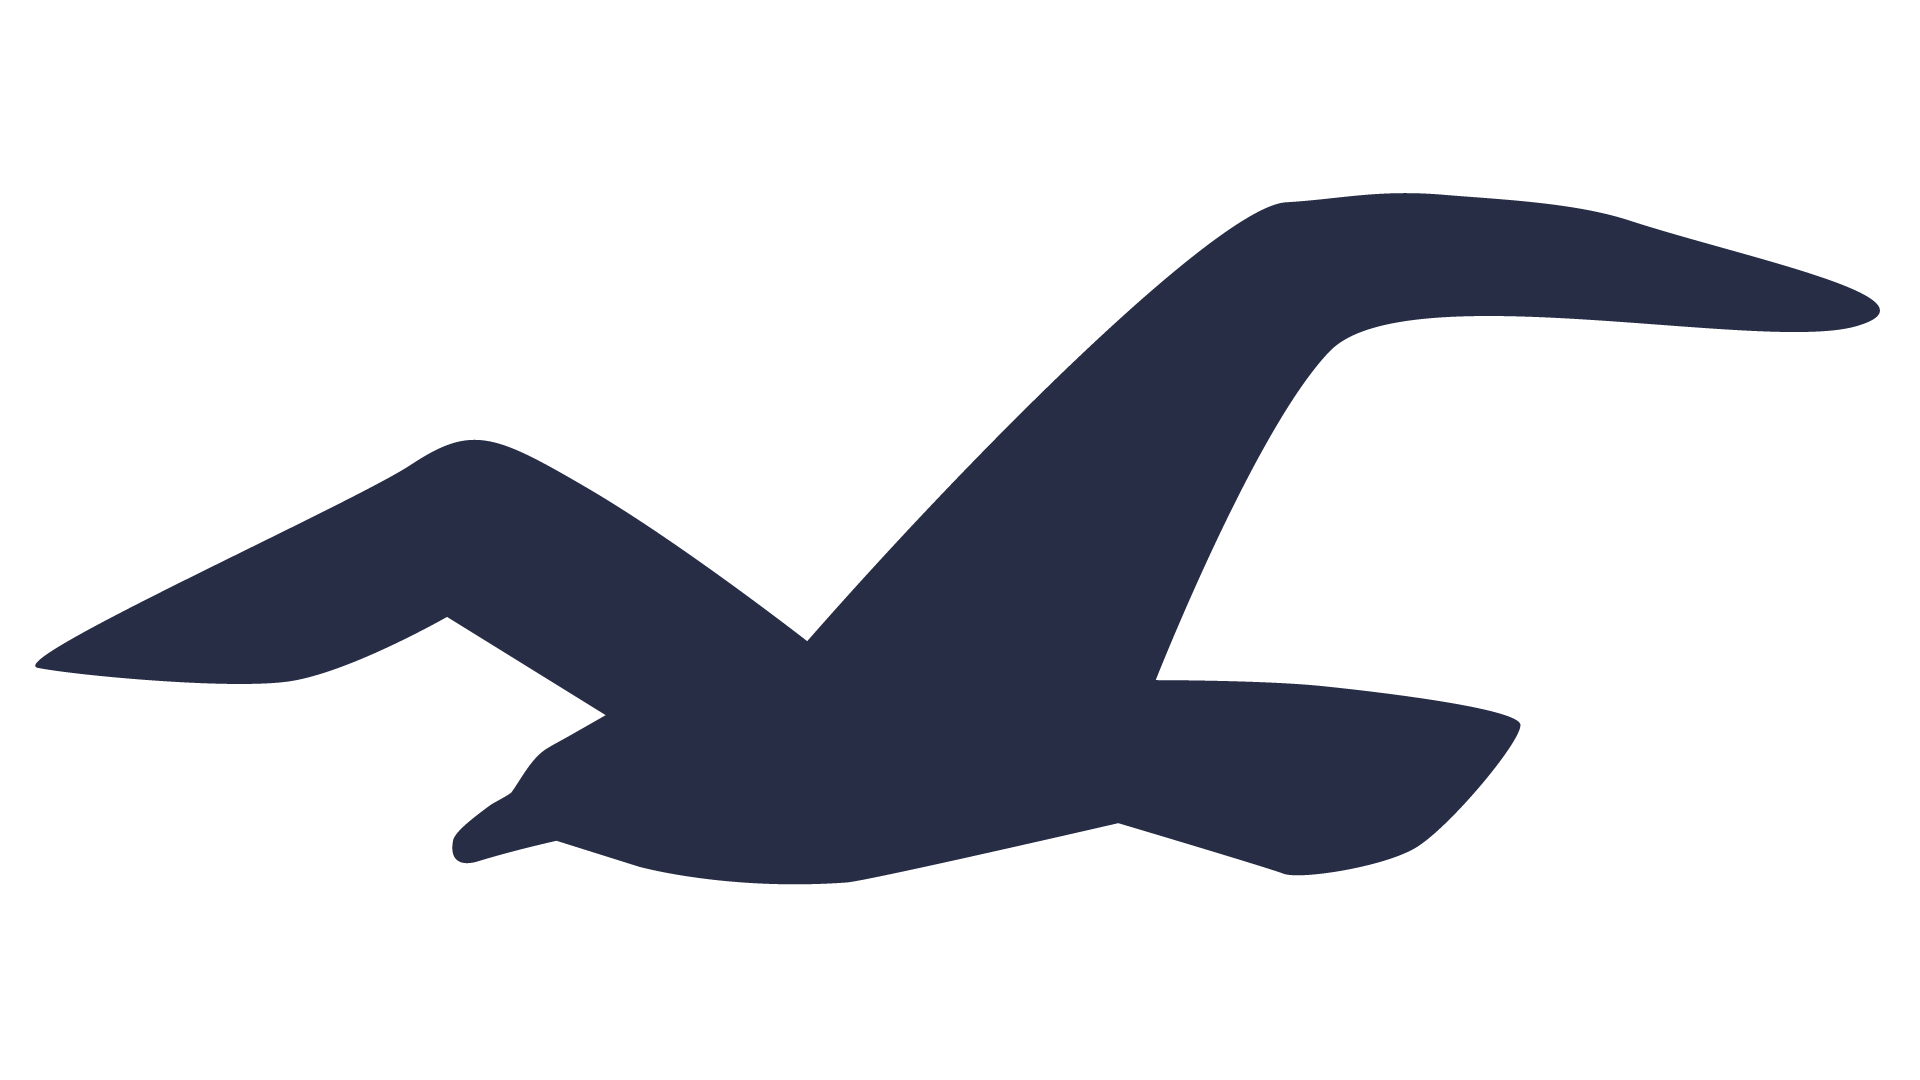 seagull logo png